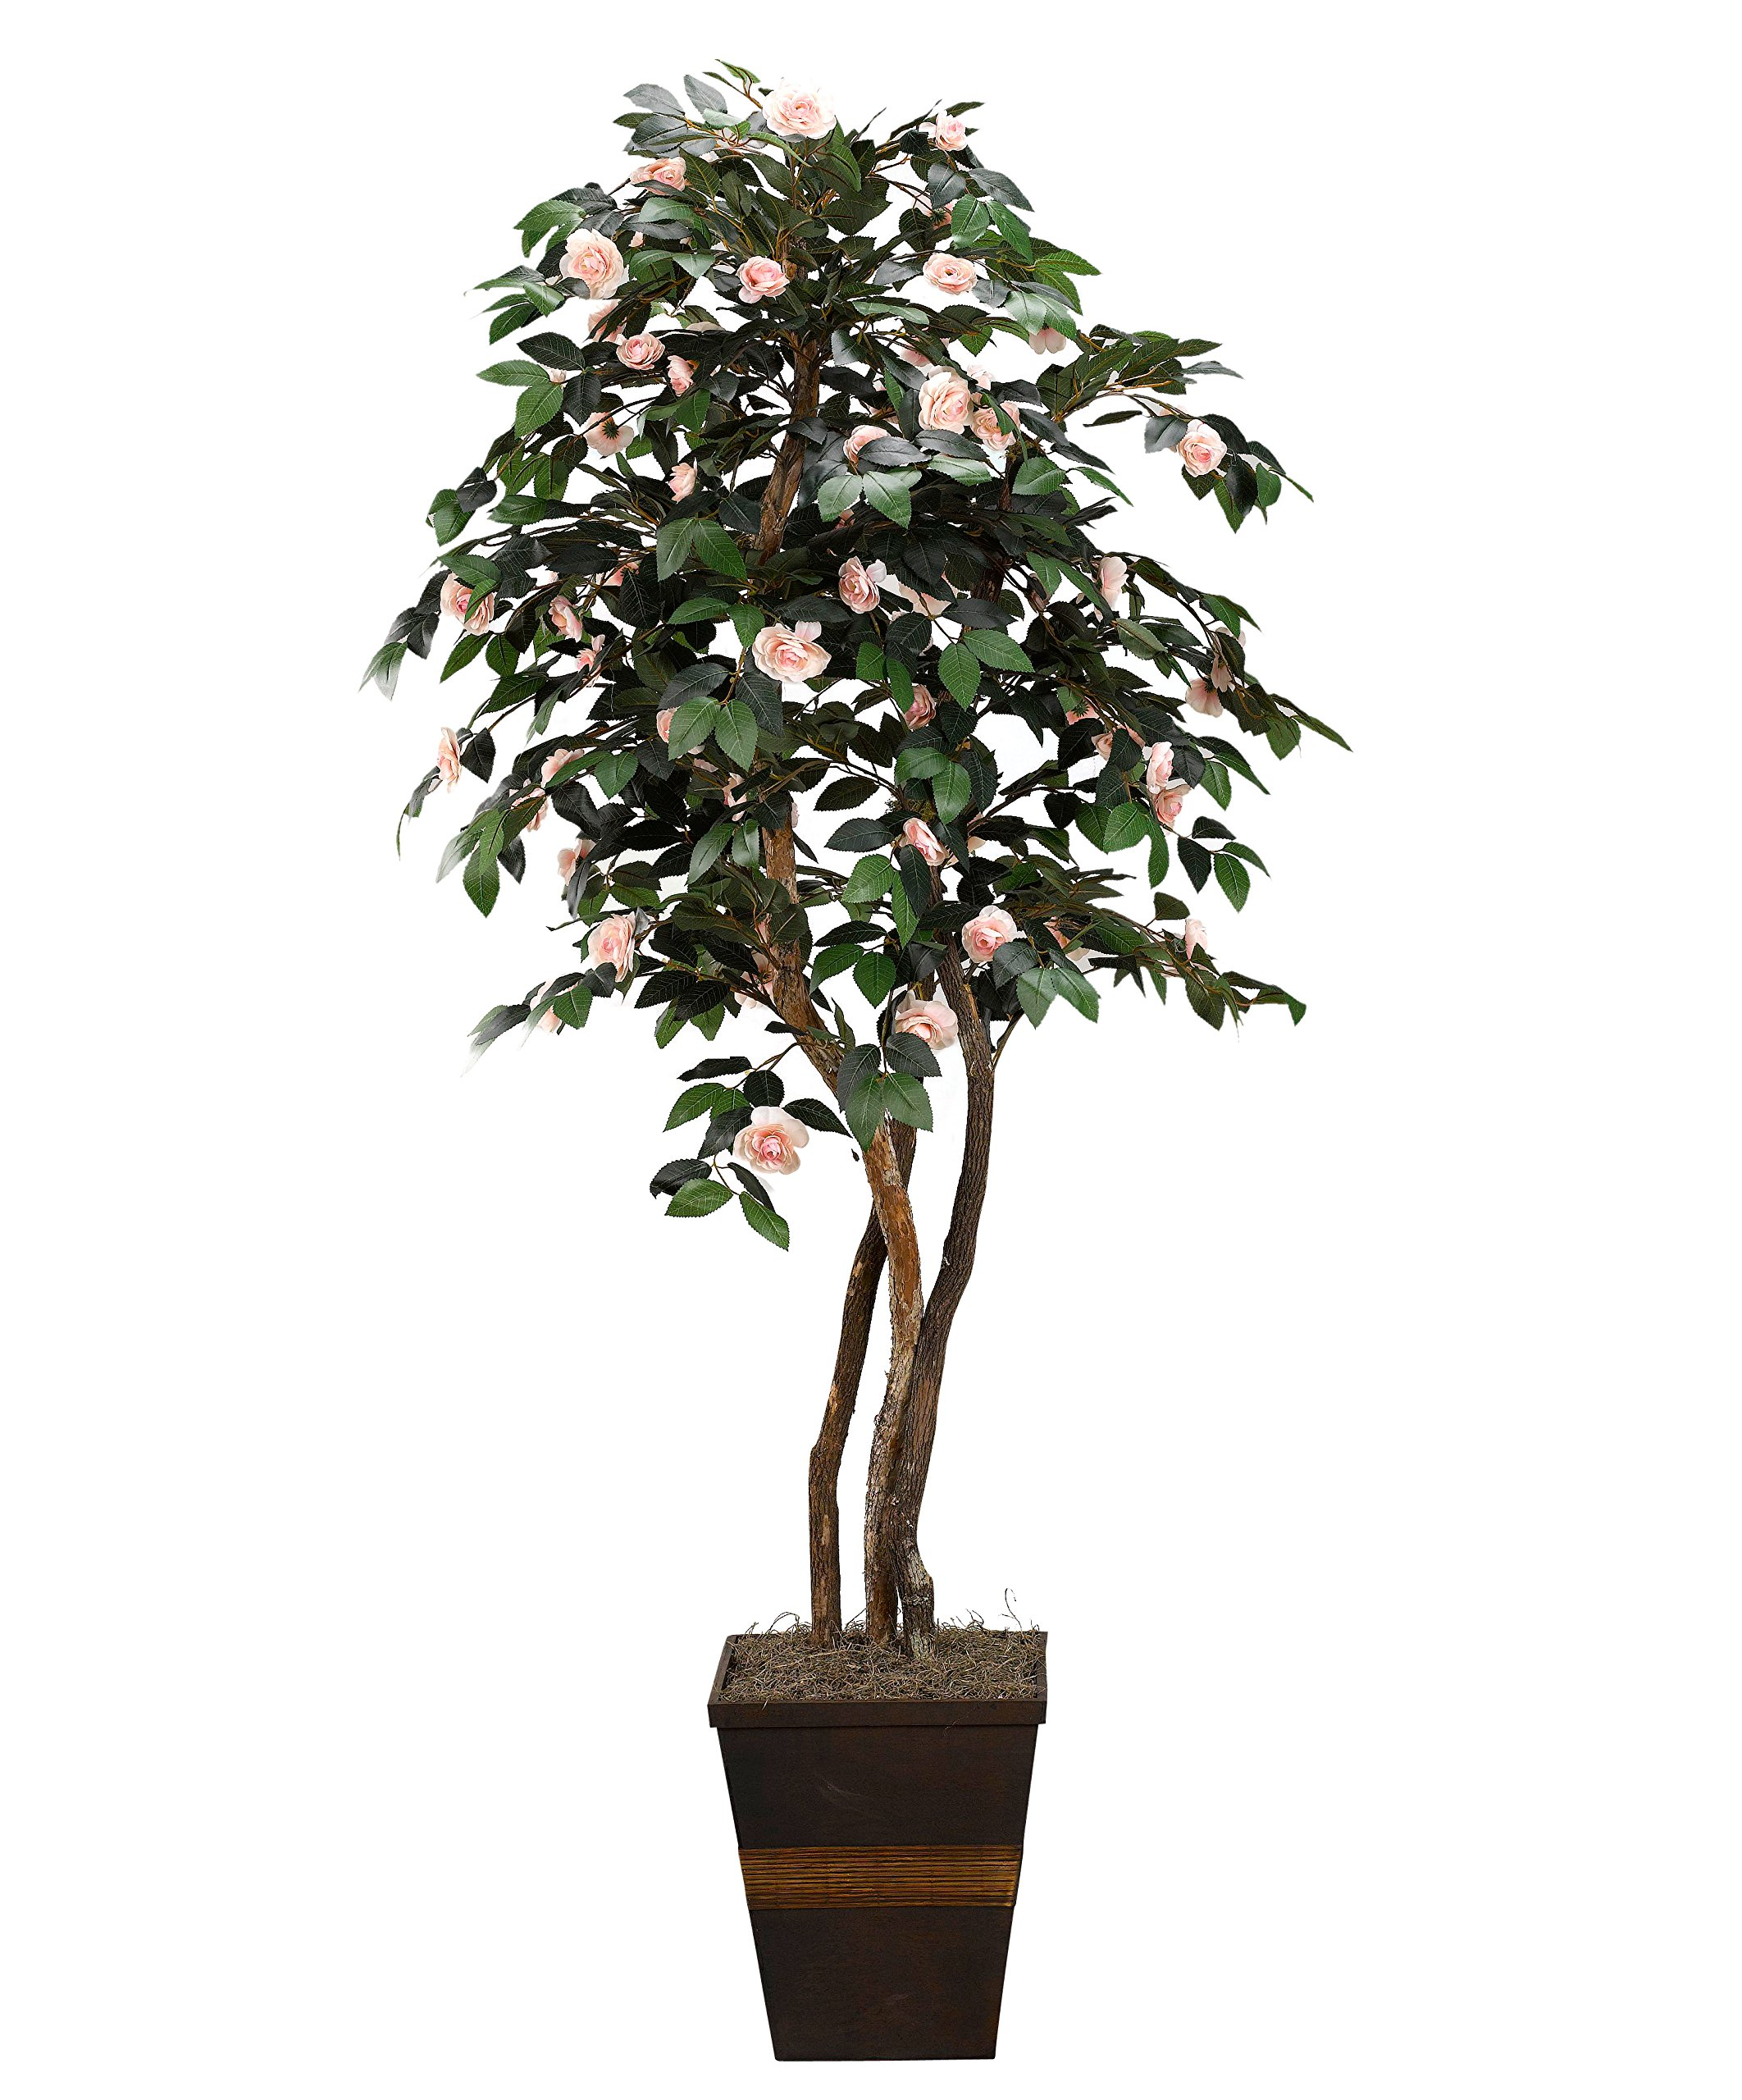 D & W Silks 317114 Camillia Tree in Square Wood Planter, Light Pink